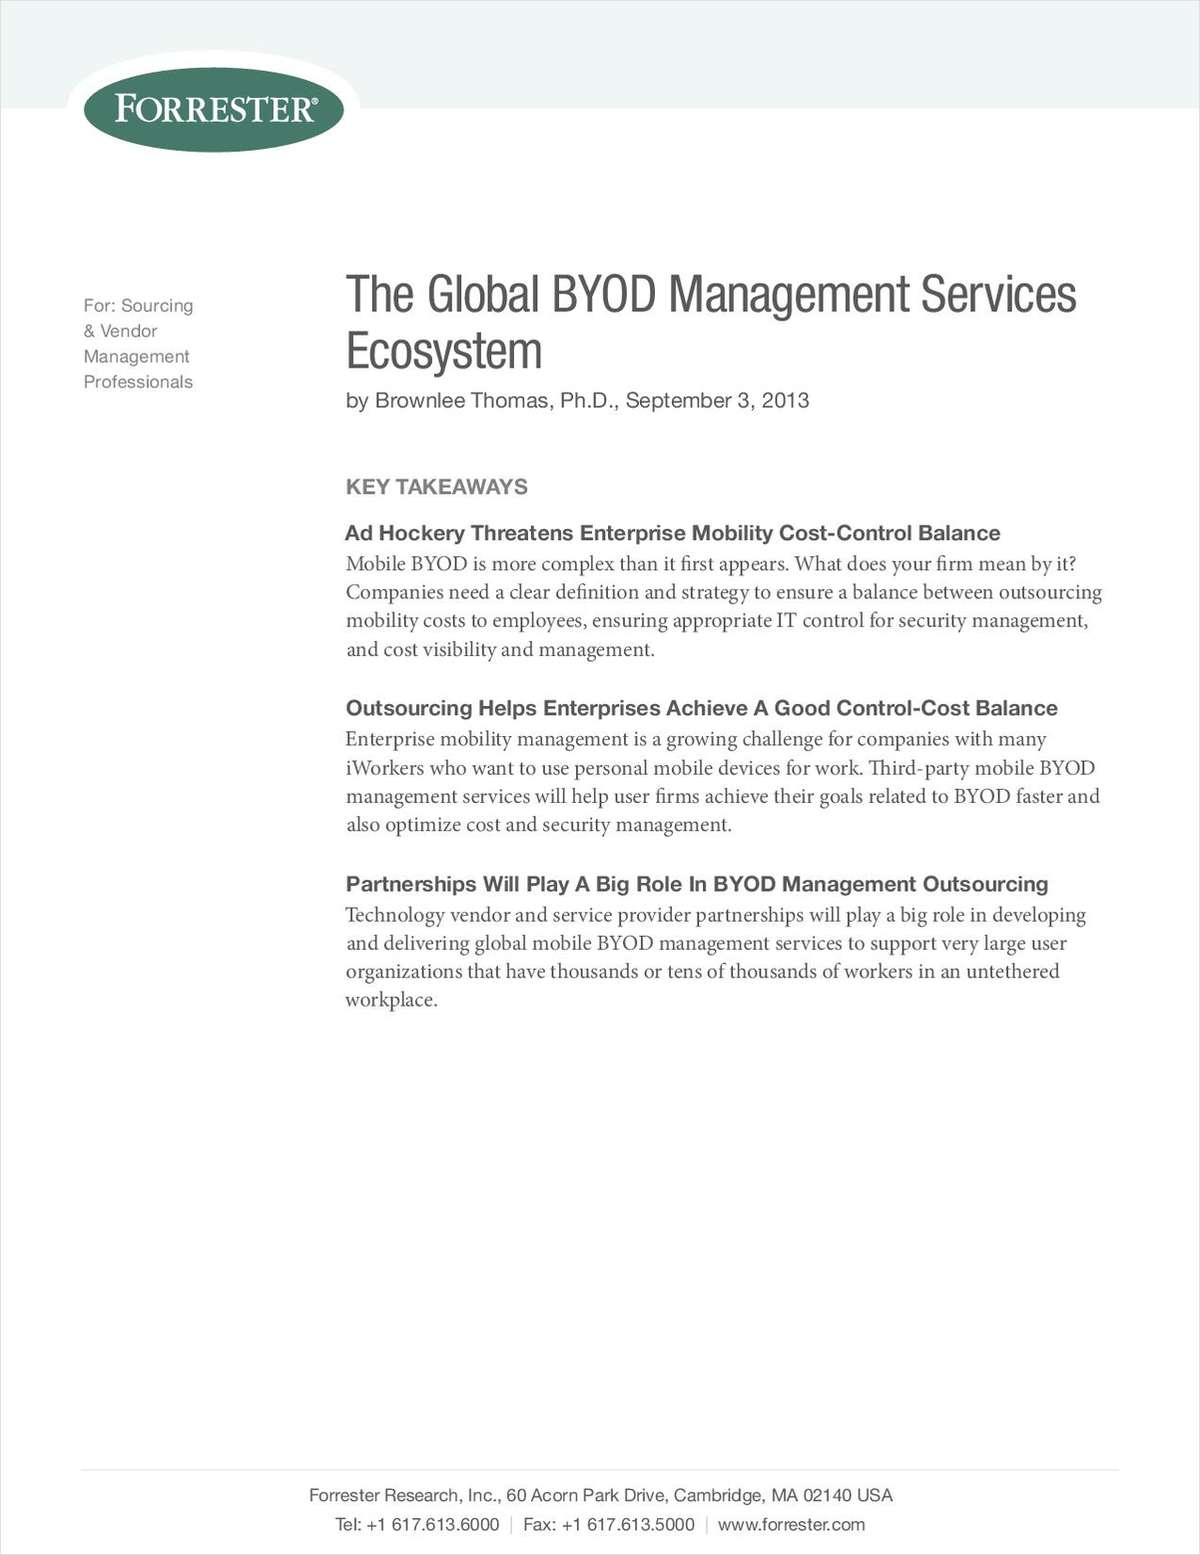 The Global BYOD Management Services Ecosystem